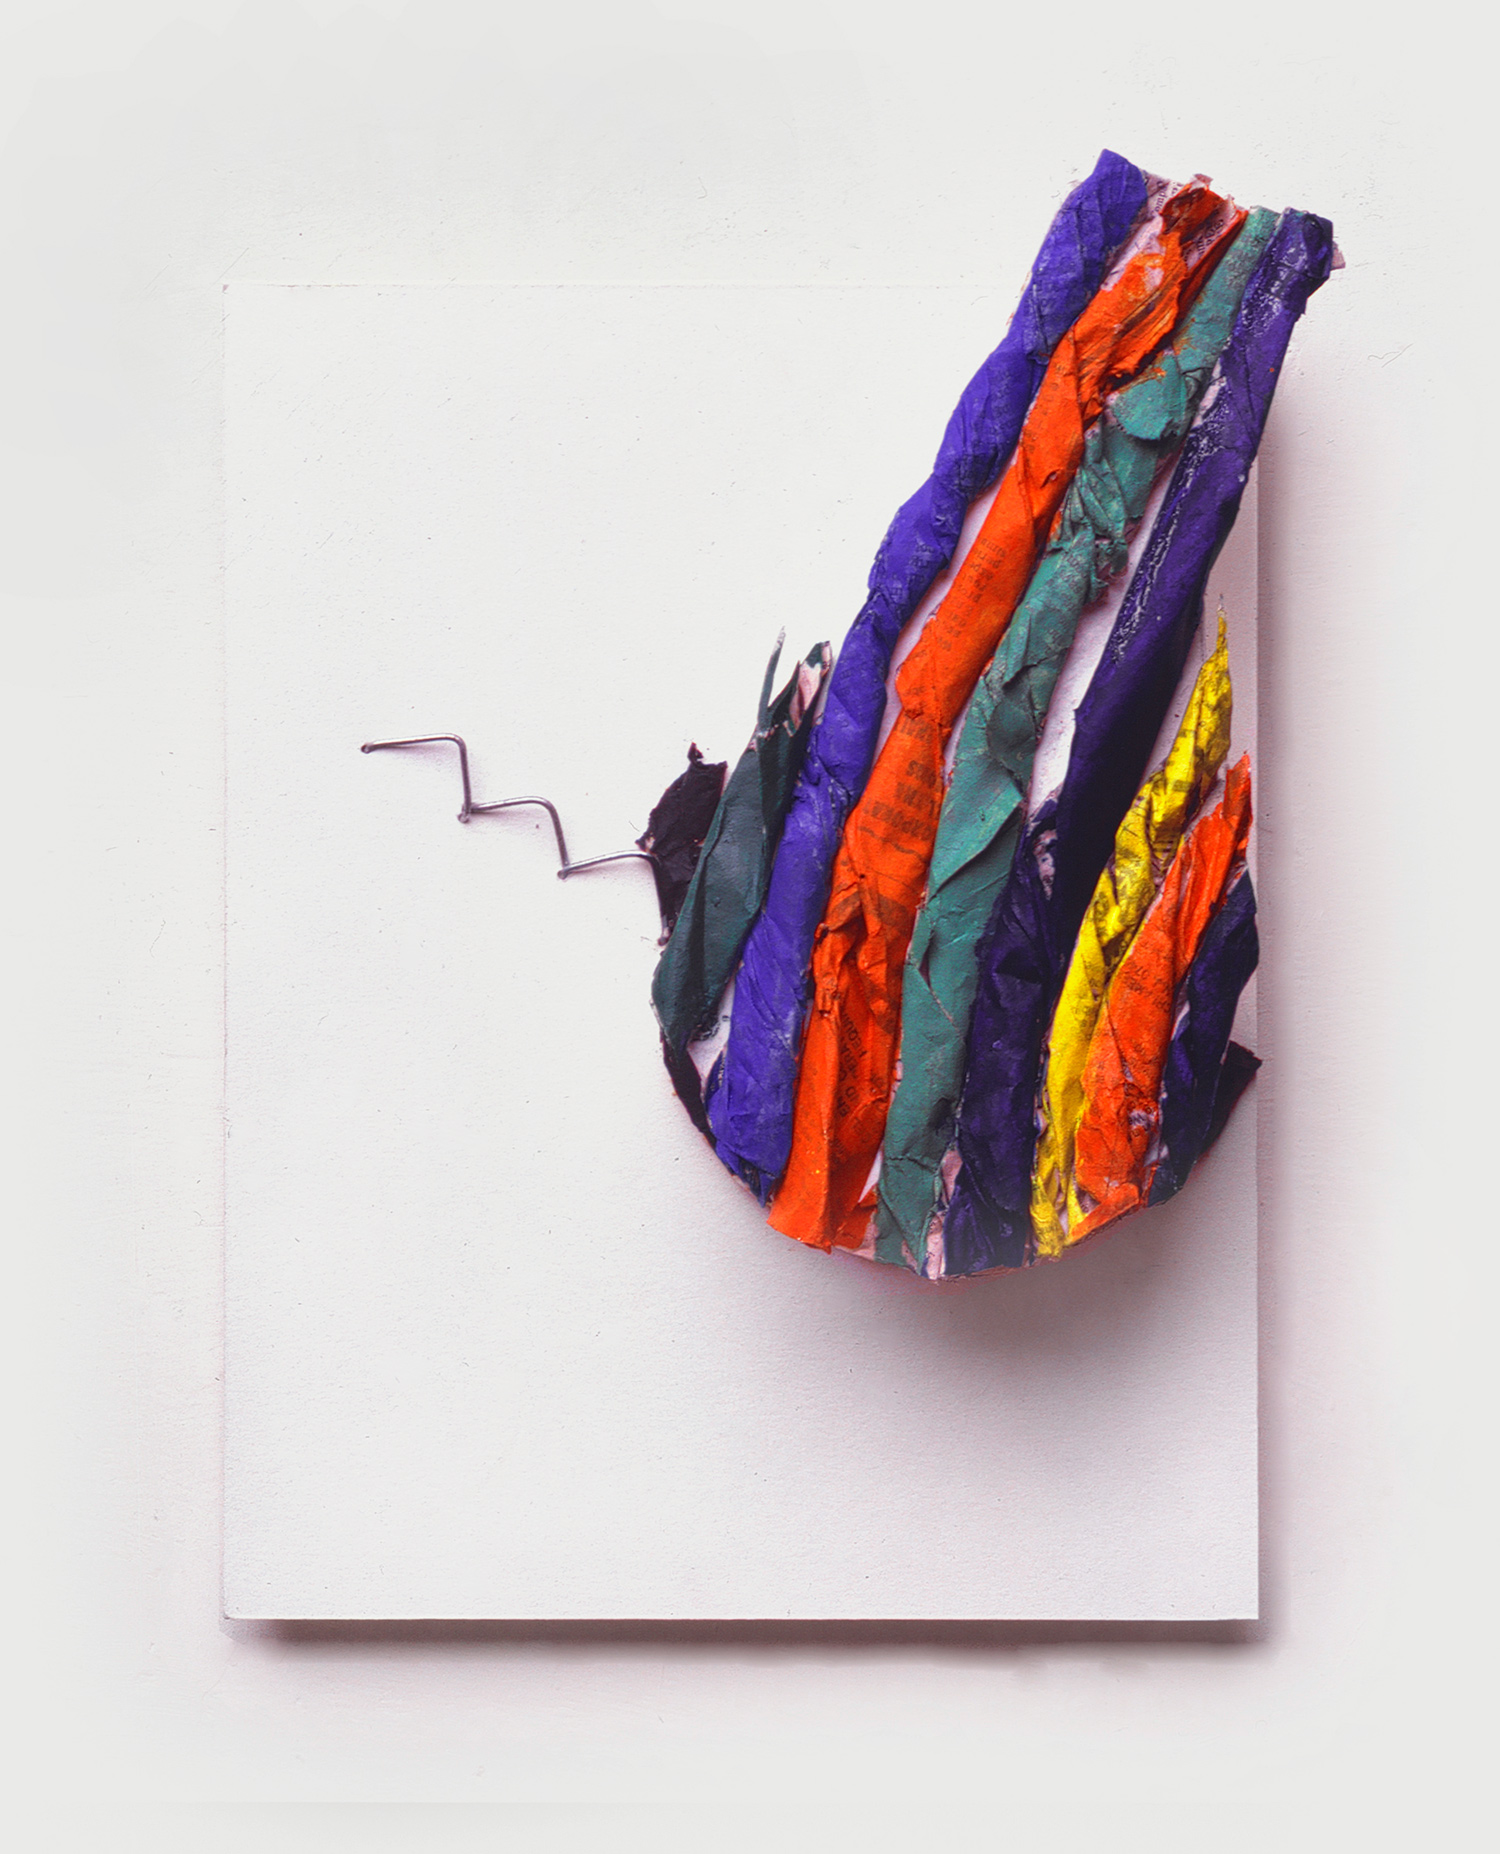 Richard Tuttle  Z 3,  1981 Paper, metal, wood, watercolor on paper mounted on wood 11 x 8 1/2 Inches  (28 x 22 cm)